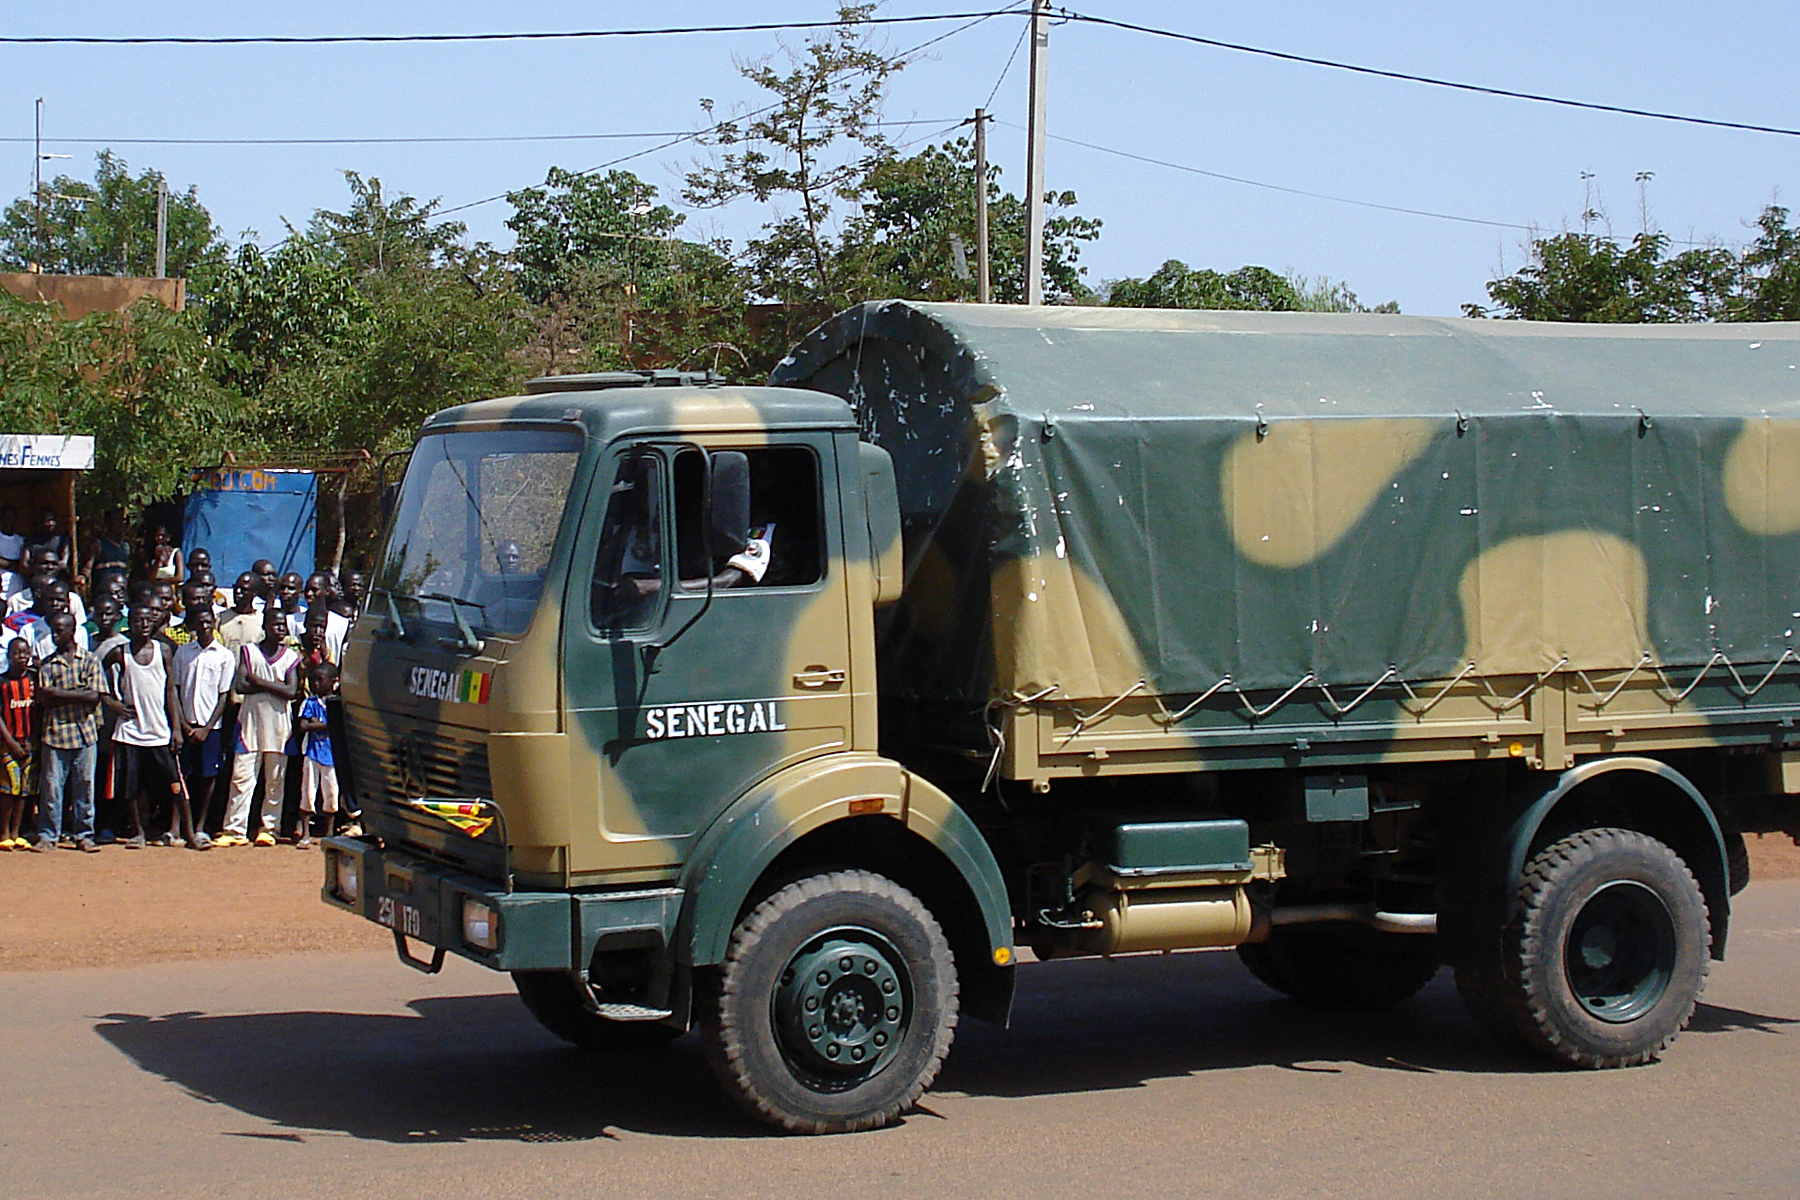 U.s Military Transport Vehicles File:Senegalese Army t...